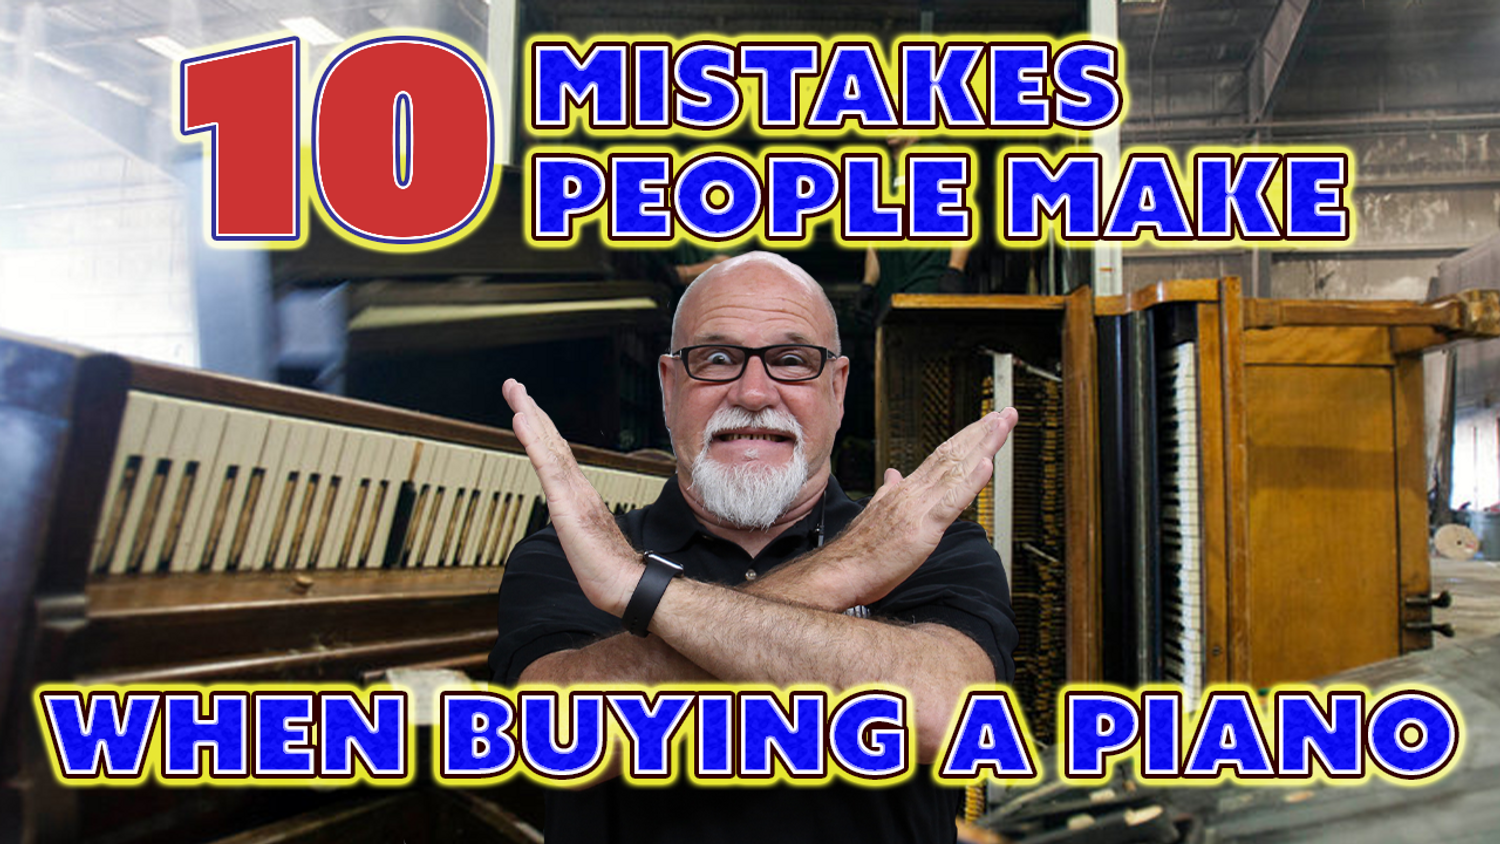 The Top 10 Mistakes People Make When Buying A Piano